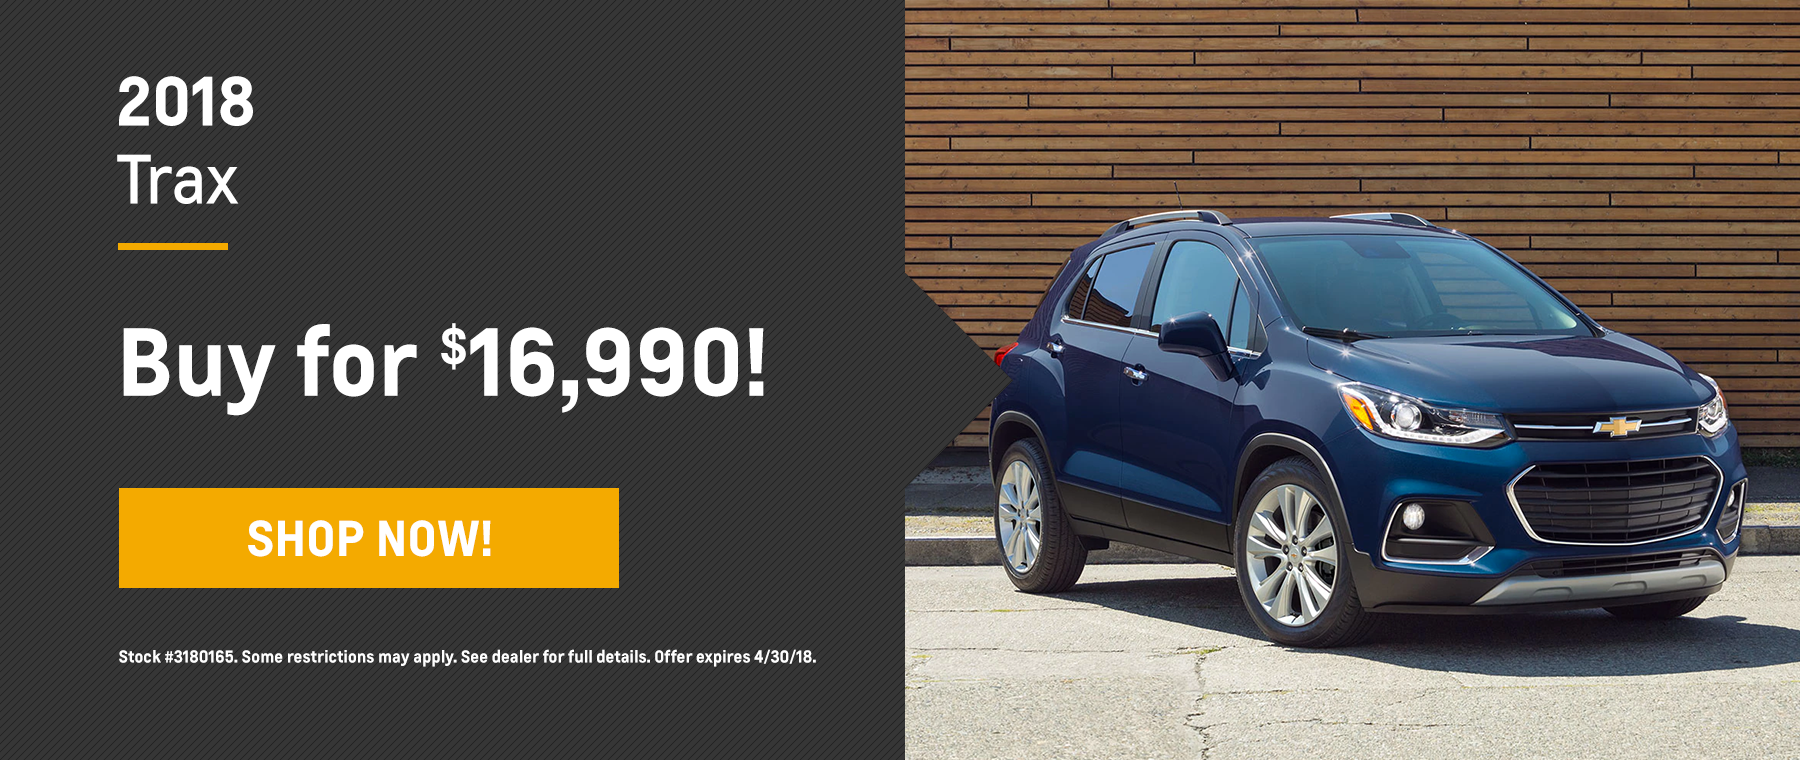 Trax Biggers Chevrolet April Offer Homepage